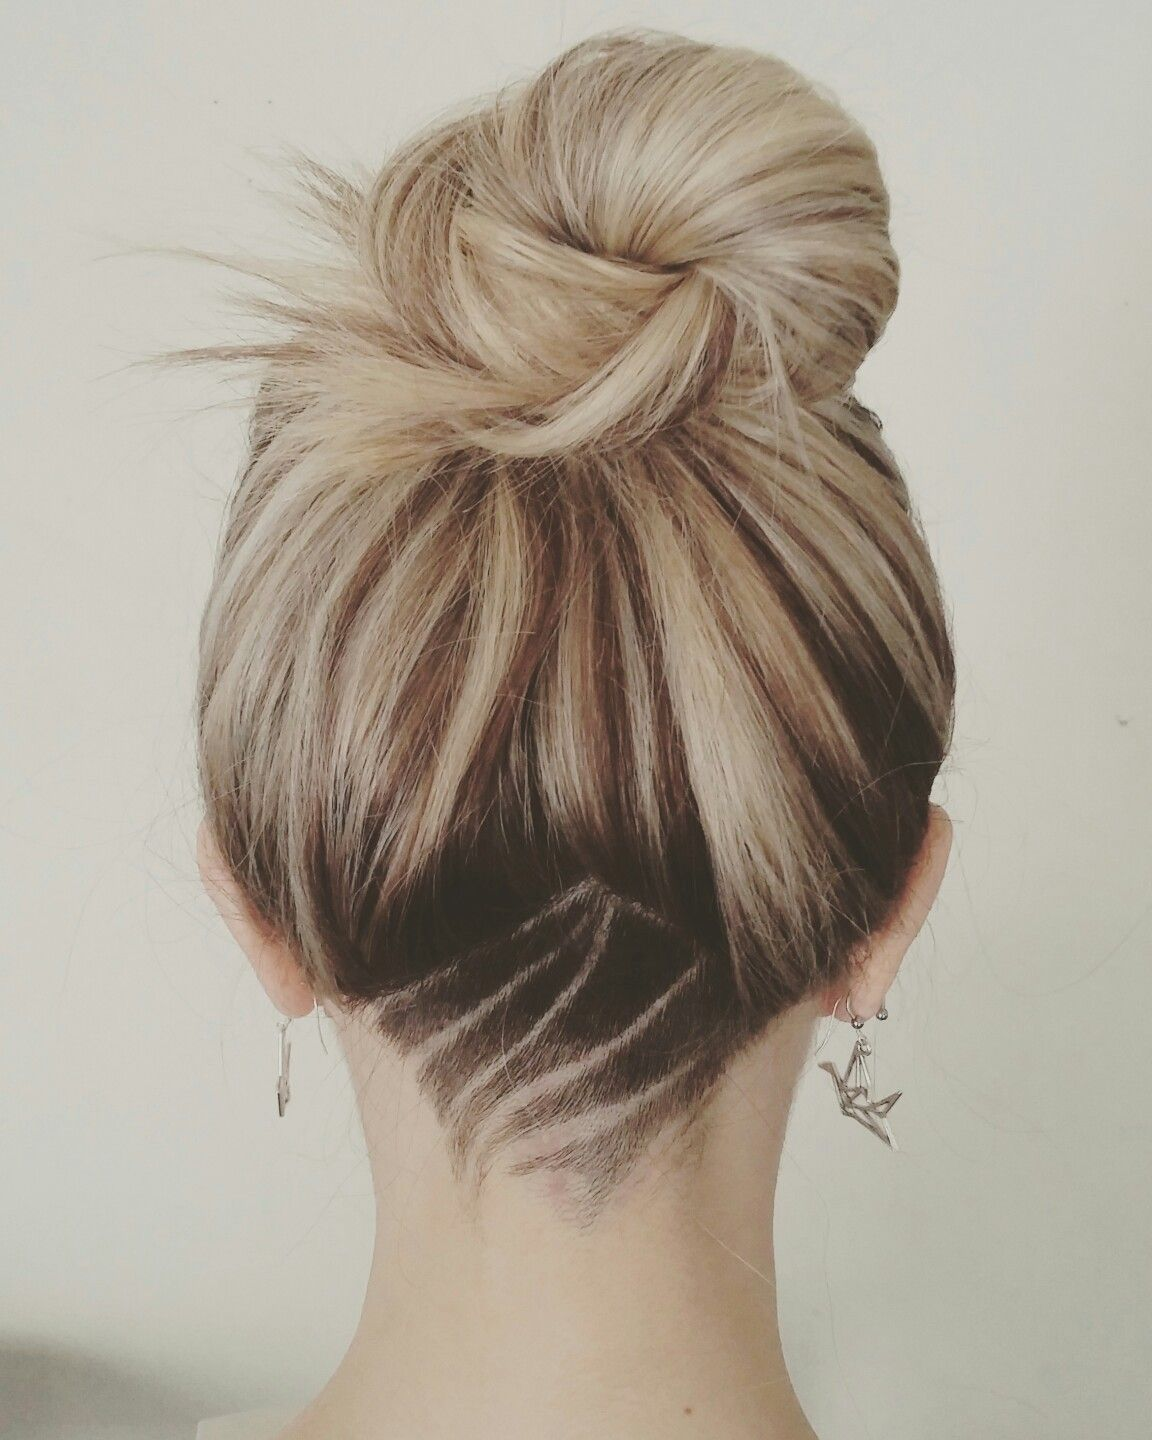 My Undercut by Salvo Patania  Undercut hairstyles, Undercut long